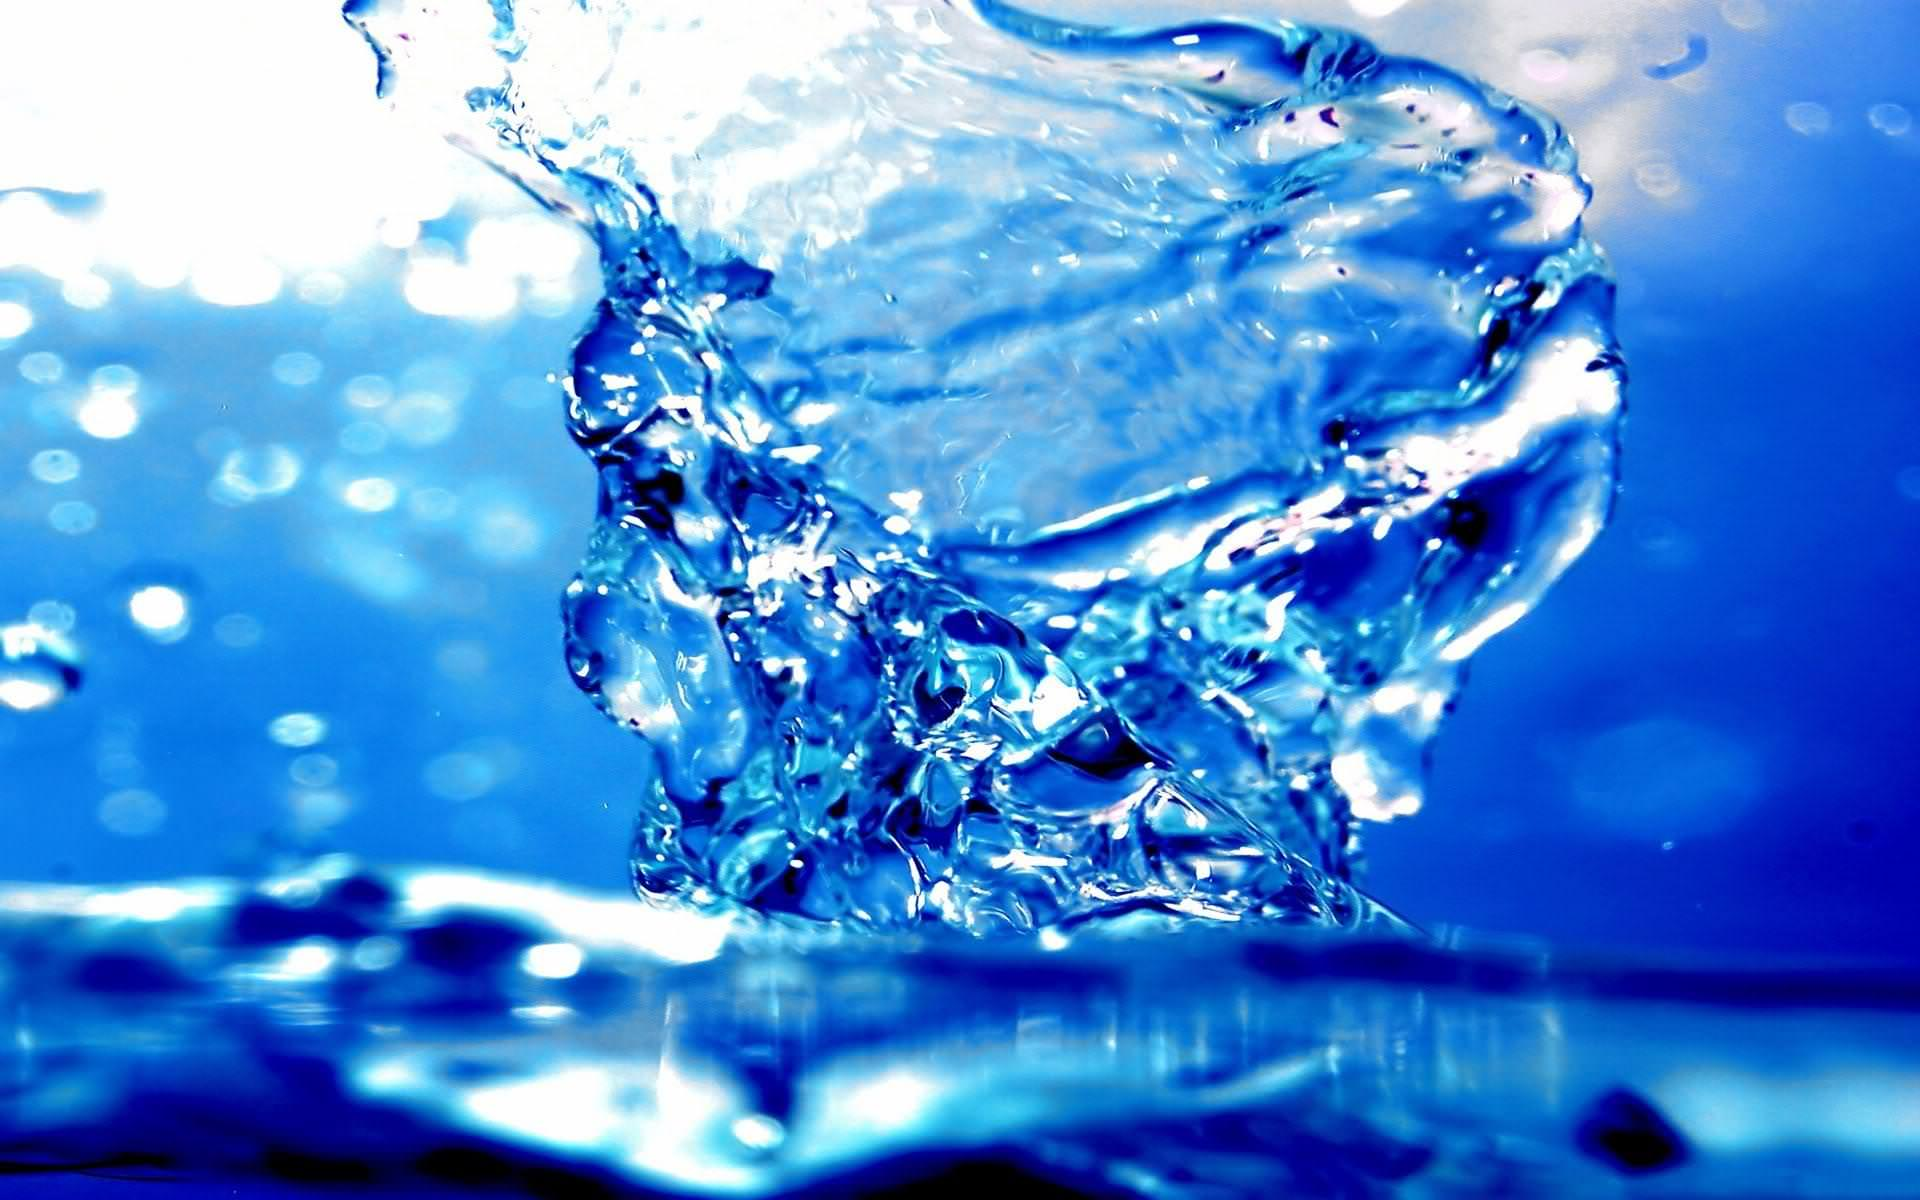 26 water backgrounds wallpapers images pictures design trends - Water background images ...